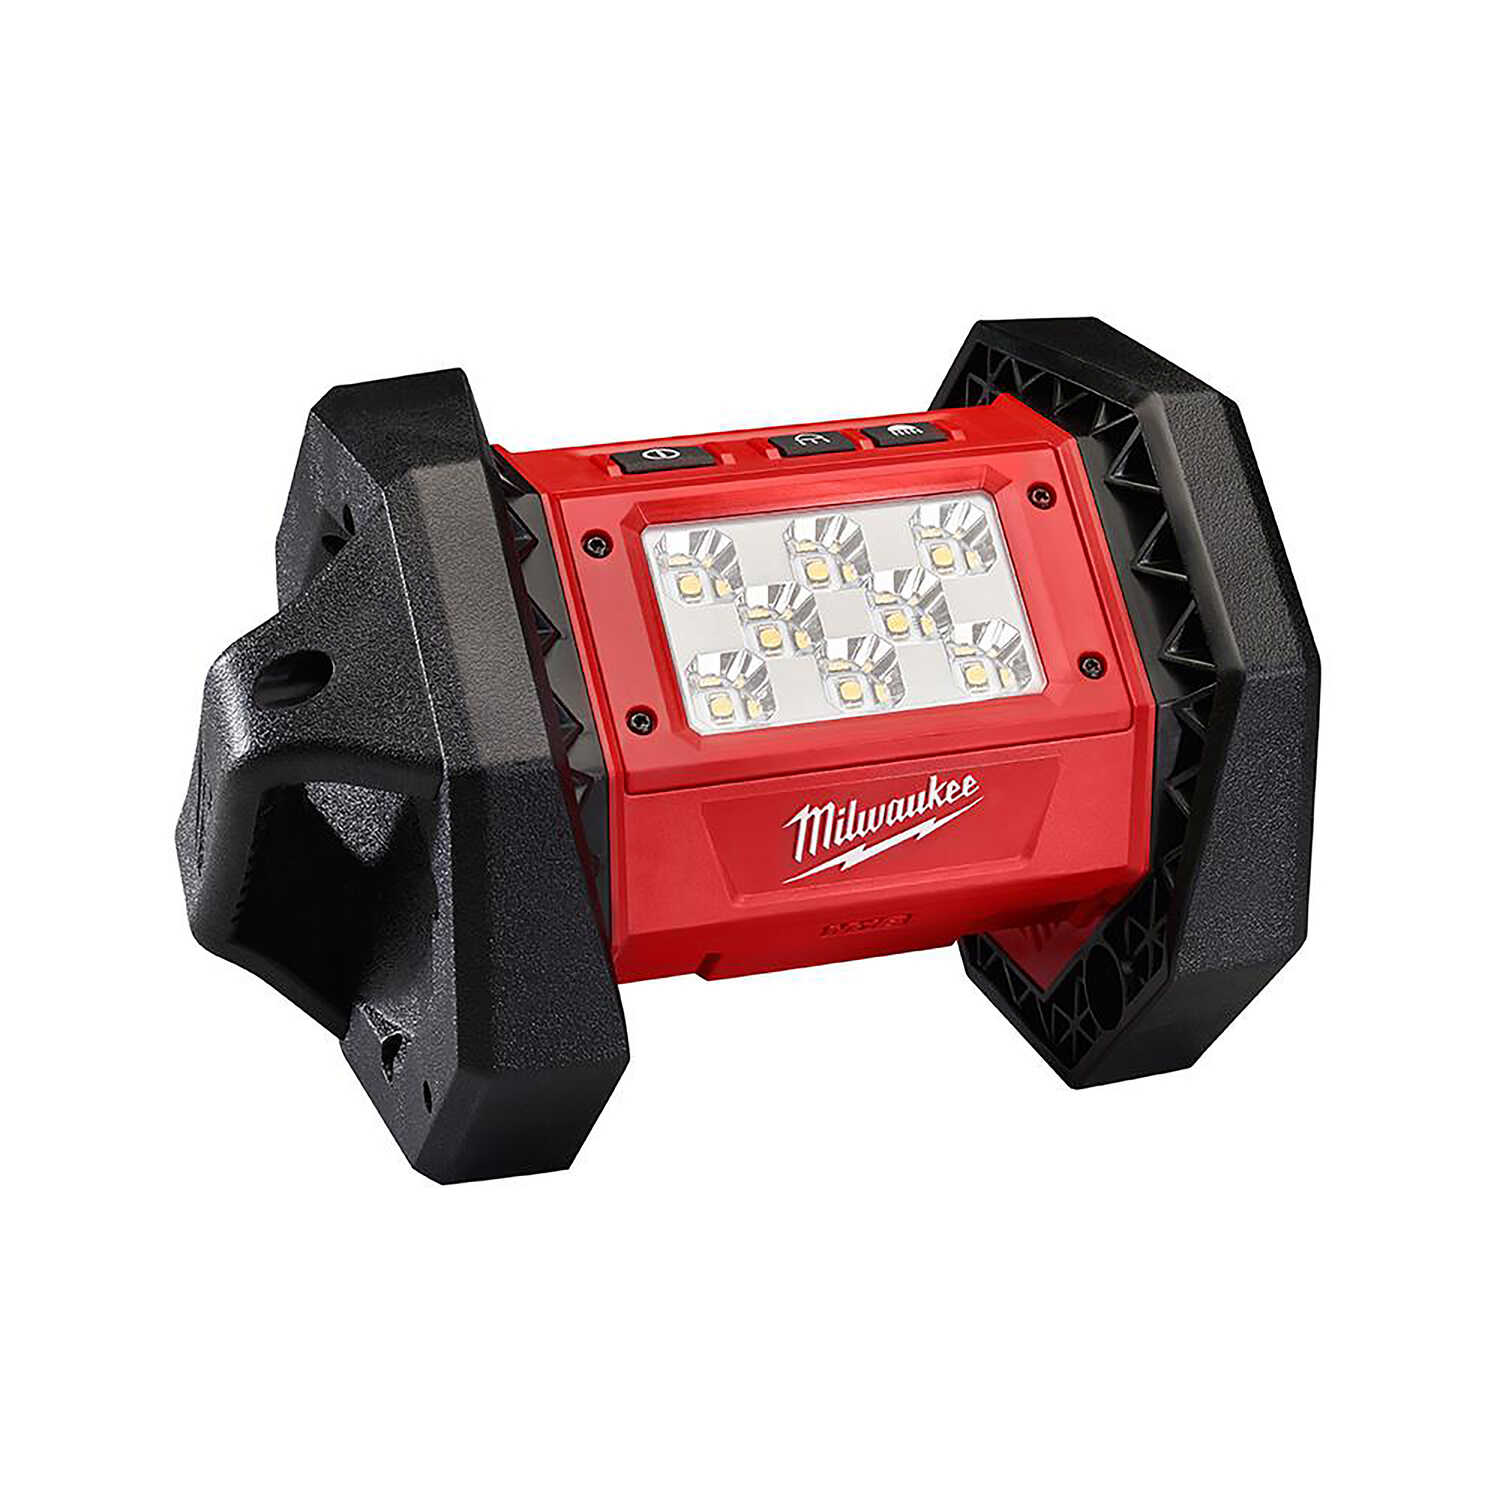 Milwaukee  Rover  8.75 in. 90 watts LED  Flood Light